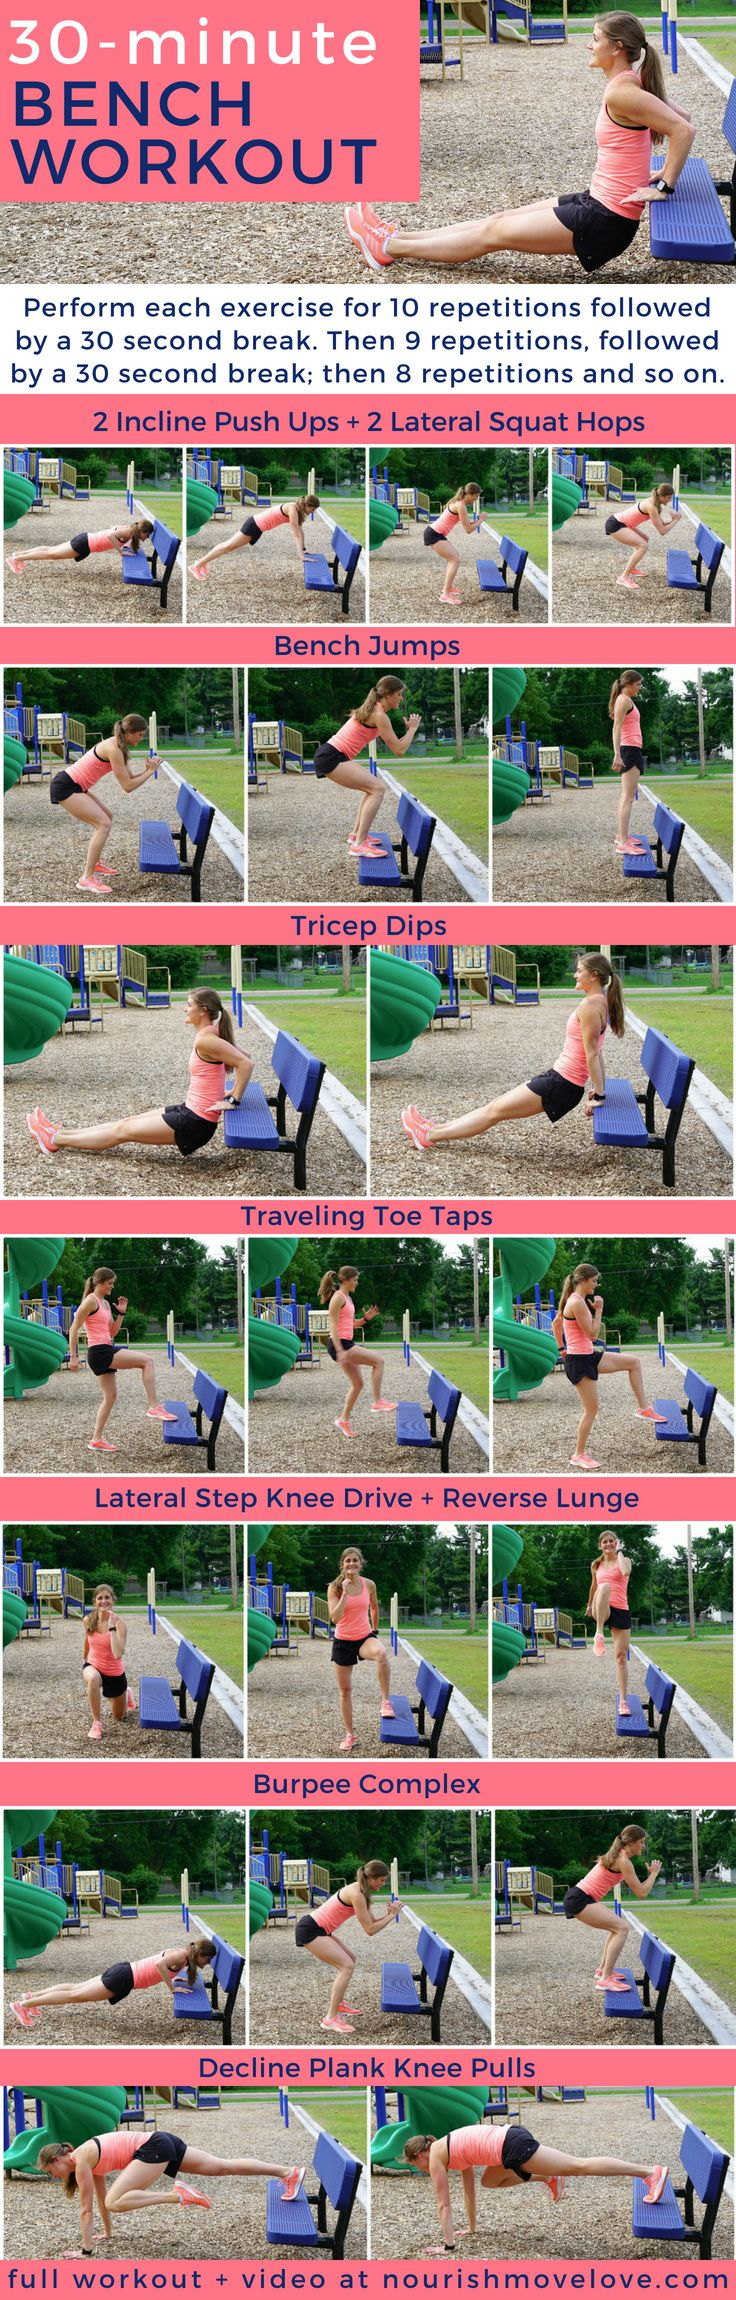 Bodyweight Bench HIIT Workout